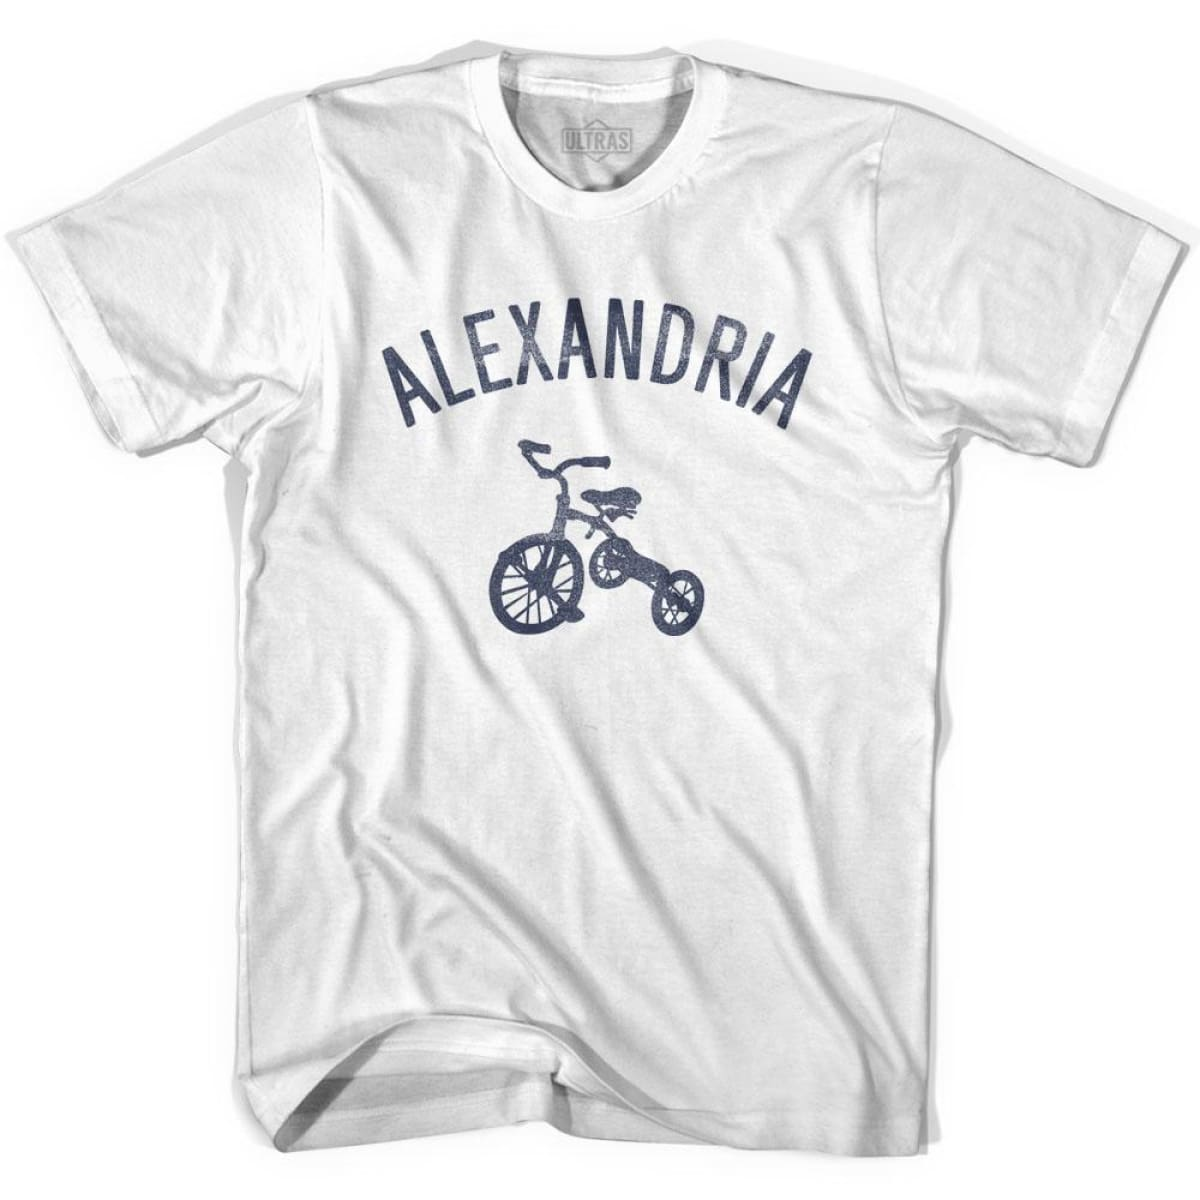 Alexandria City Tricycle Womens Cotton T-shirt - Tricycle City